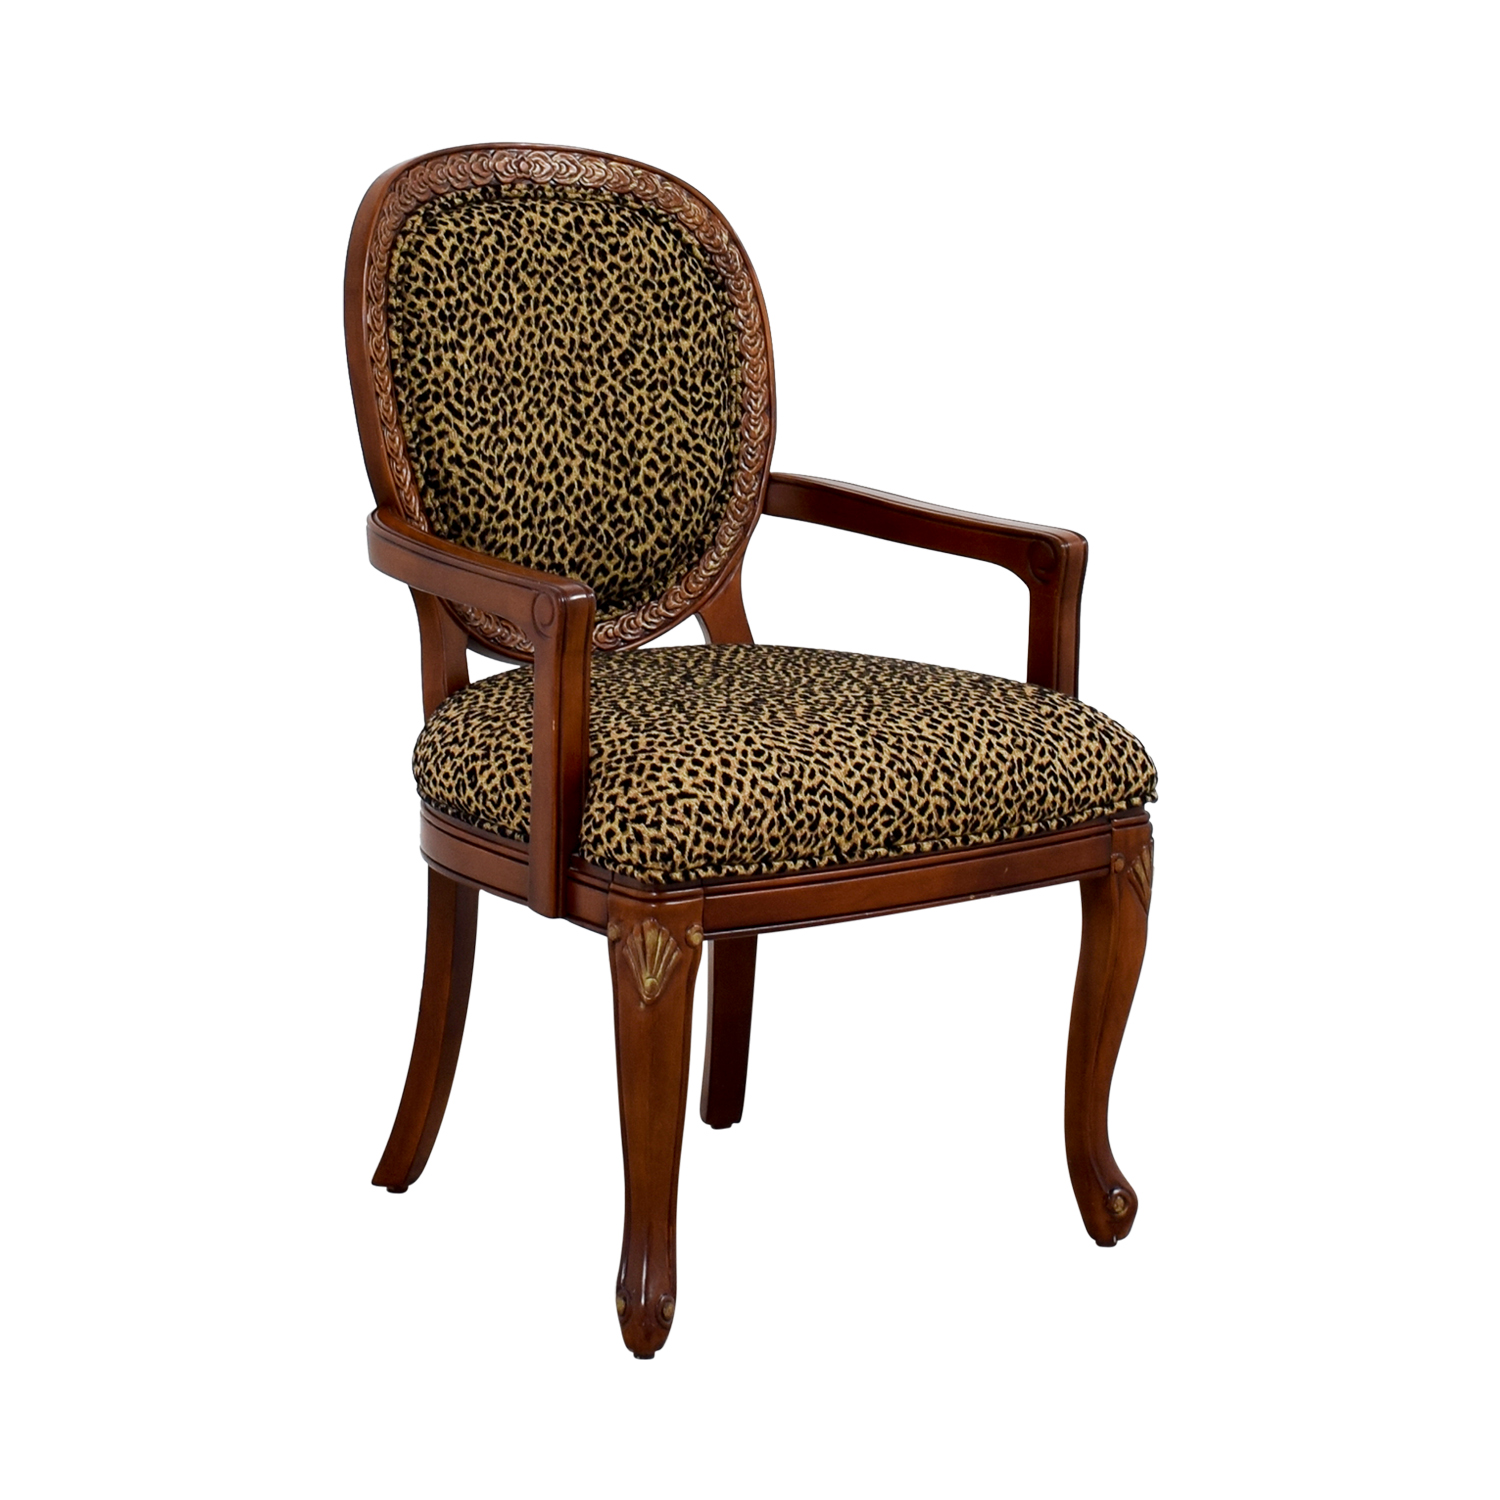 ... Leopard Upholstered Wood Arm Chair / Accent Chairs ...